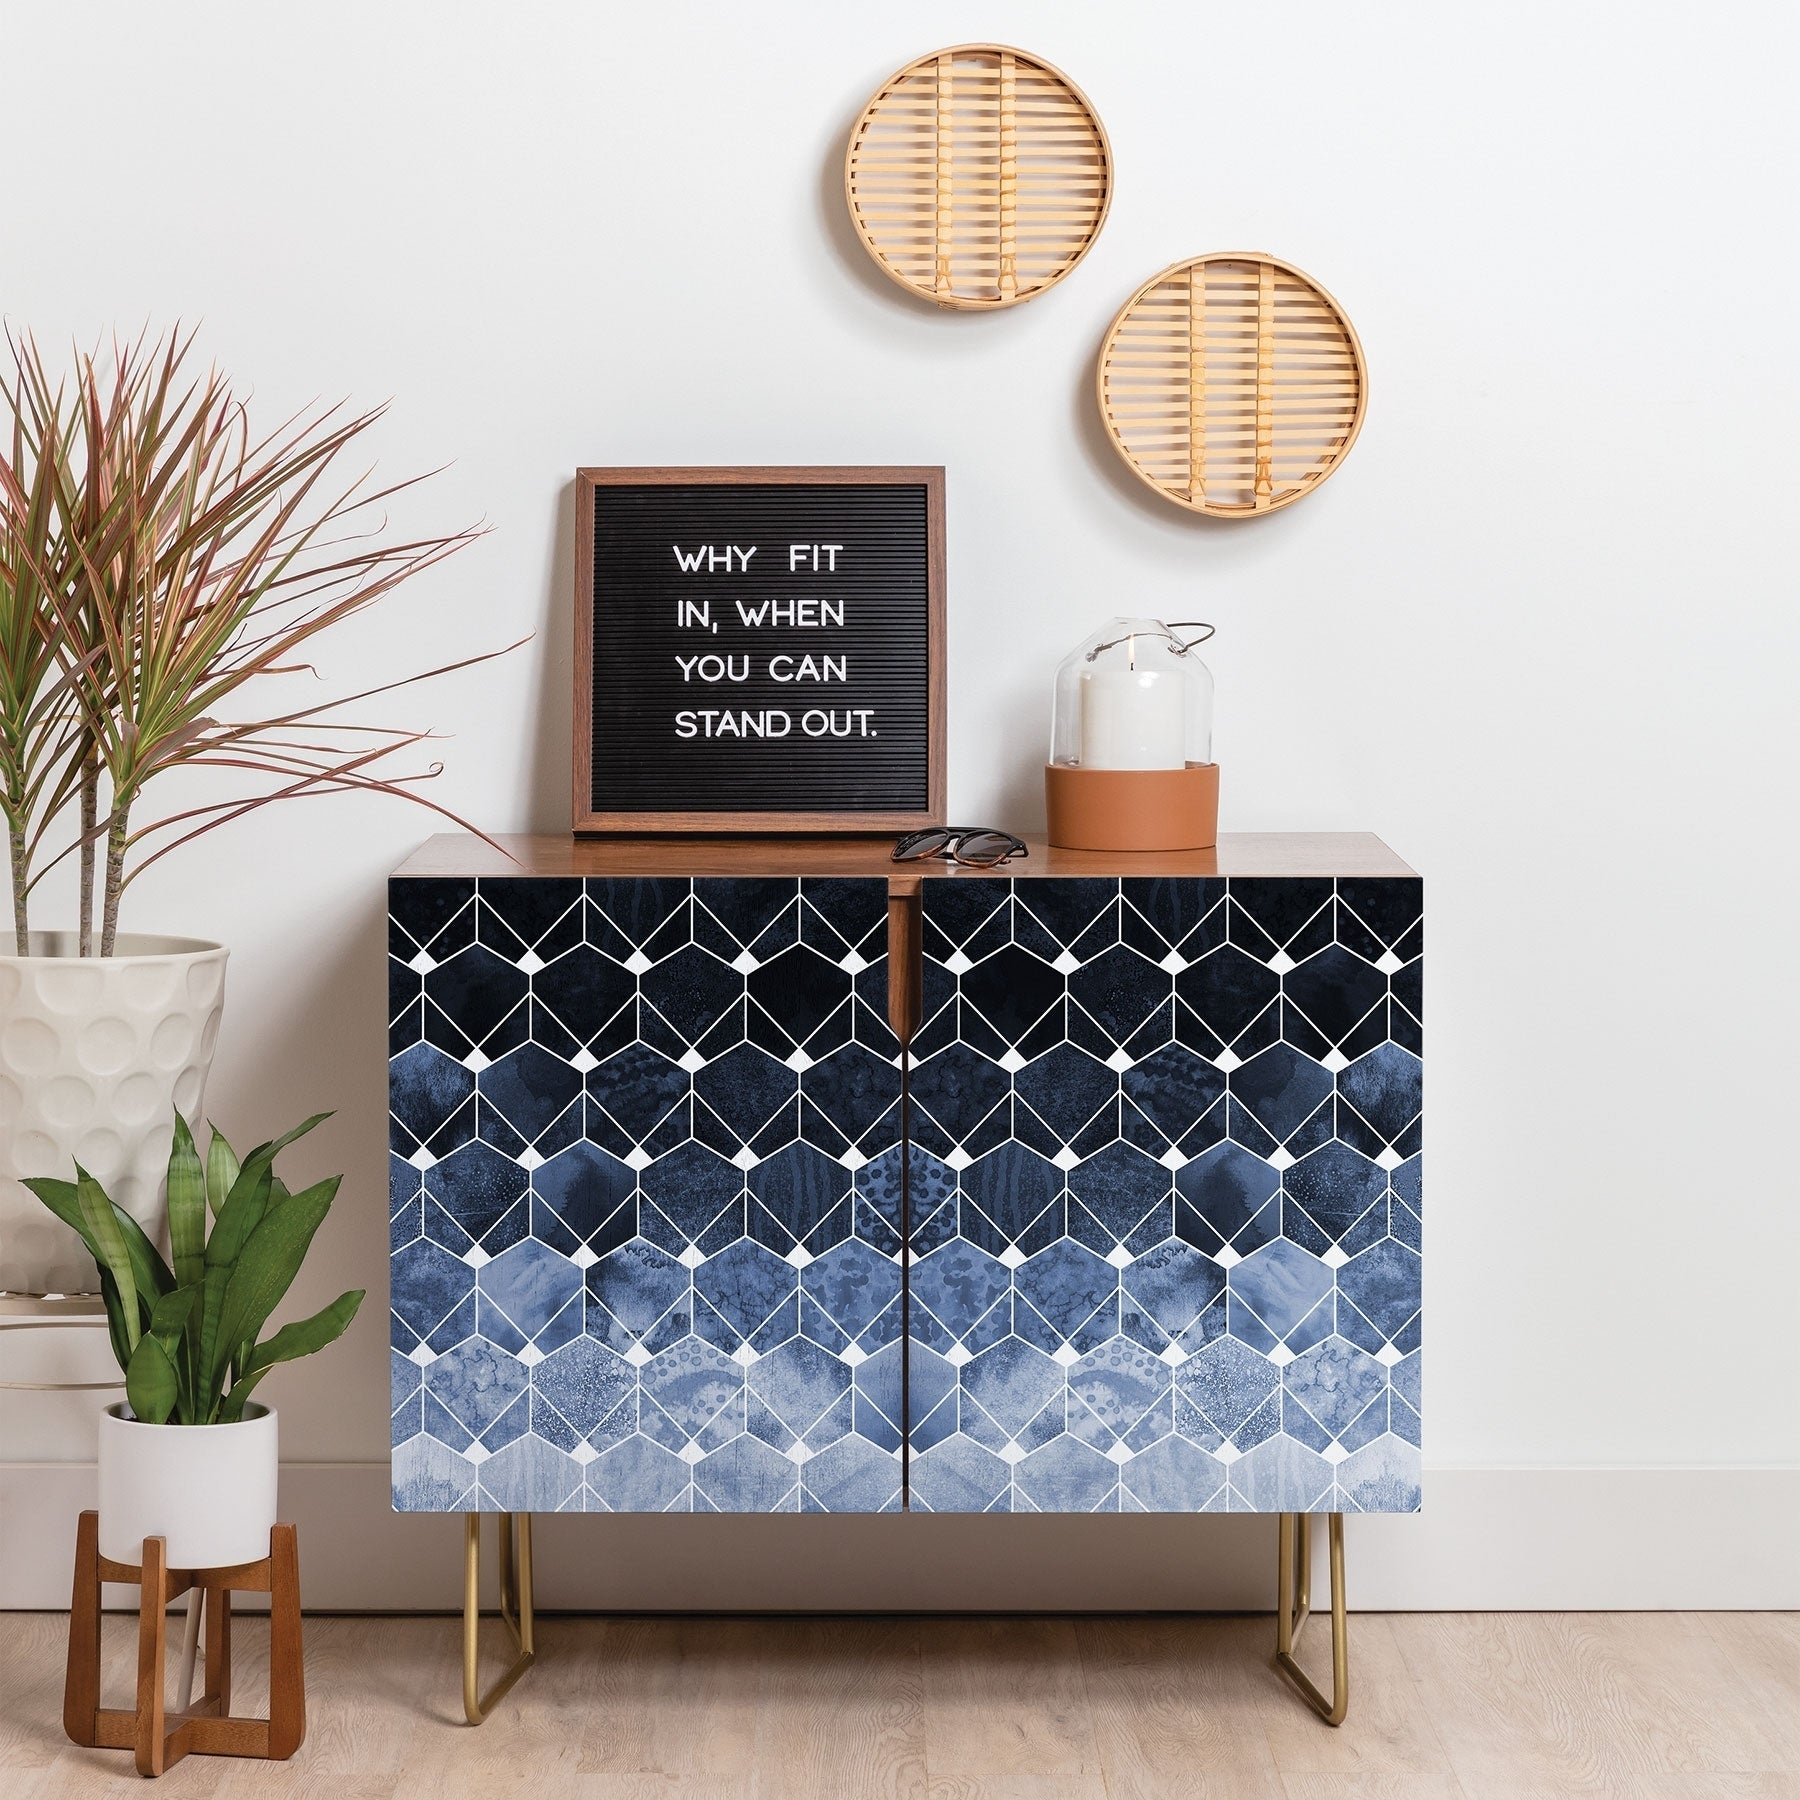 Deny Designs Blue Hexagons And Diamonds Credenza (Birch Or Walnut, 2 Leg  Options) Throughout Exagonal Geometry Credenzas (Photo 9 of 30)